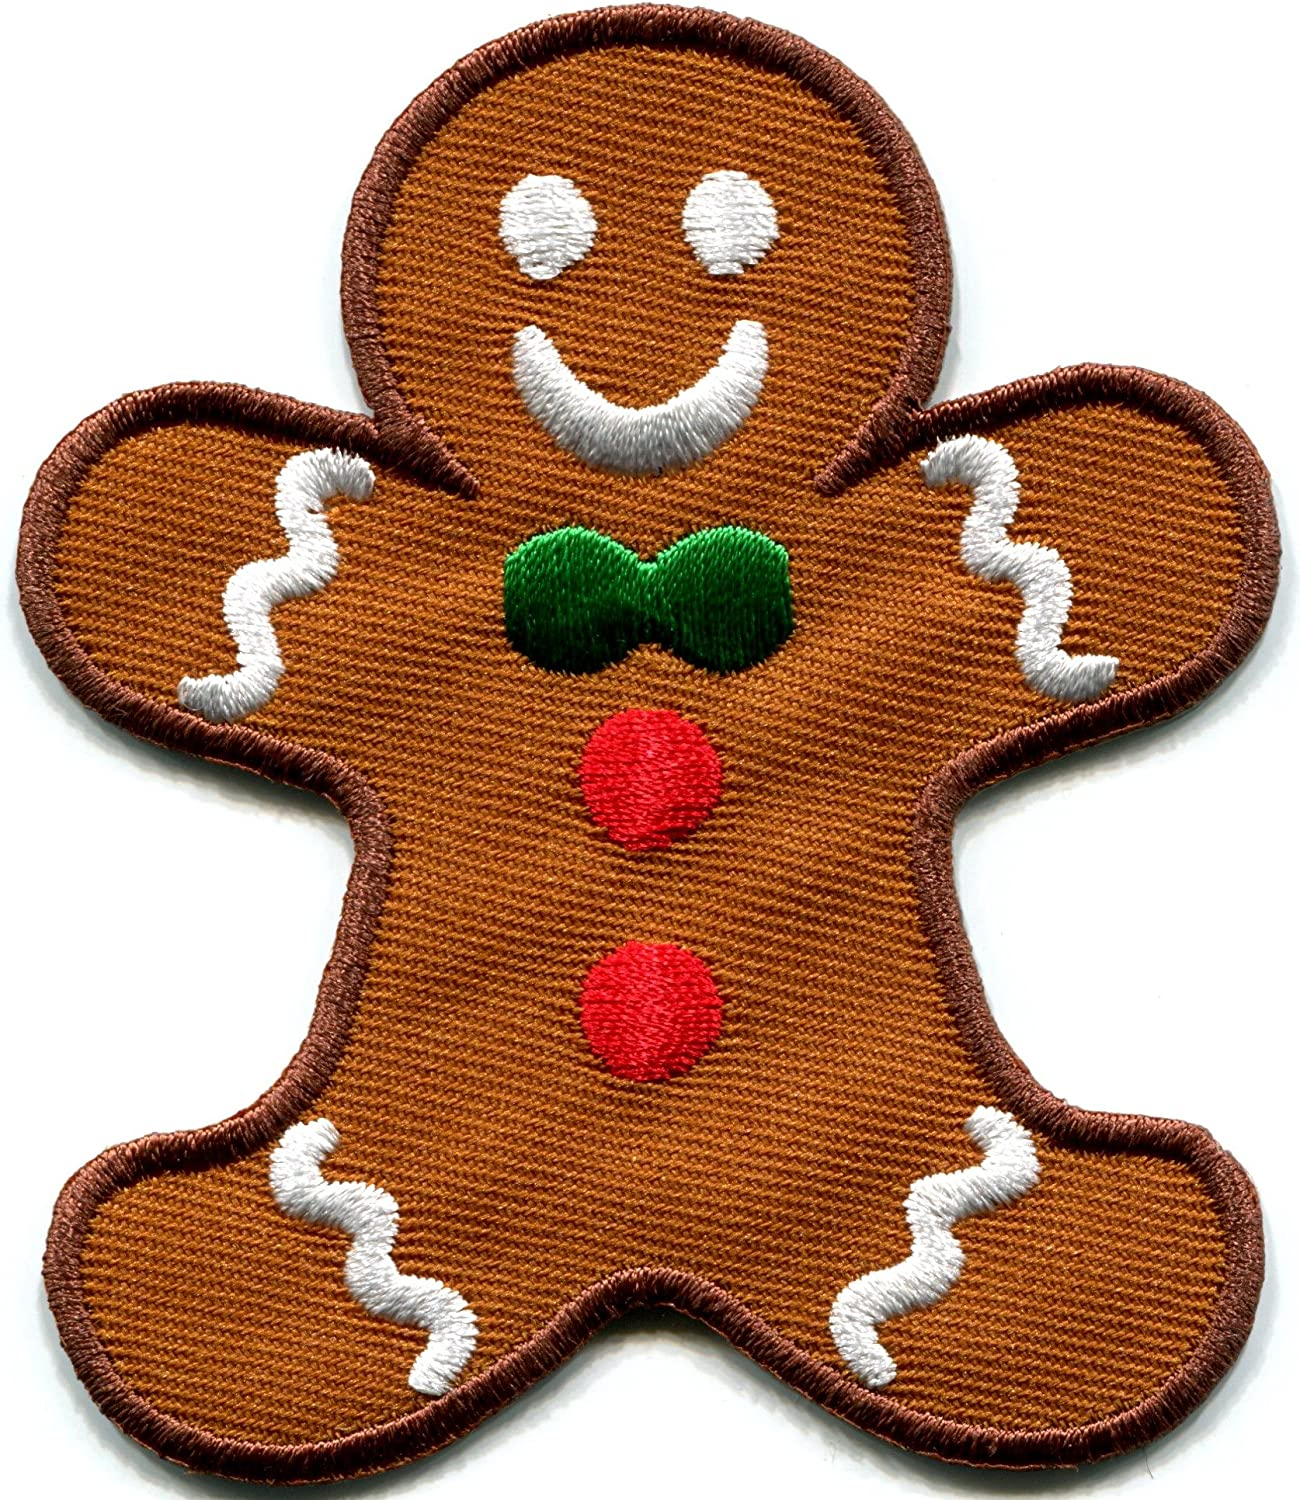 Gingerbread Man Cookie Kids Fun Holiday Sweets buscuit Christmas Embroidered Applique Iron-on Patch S-239